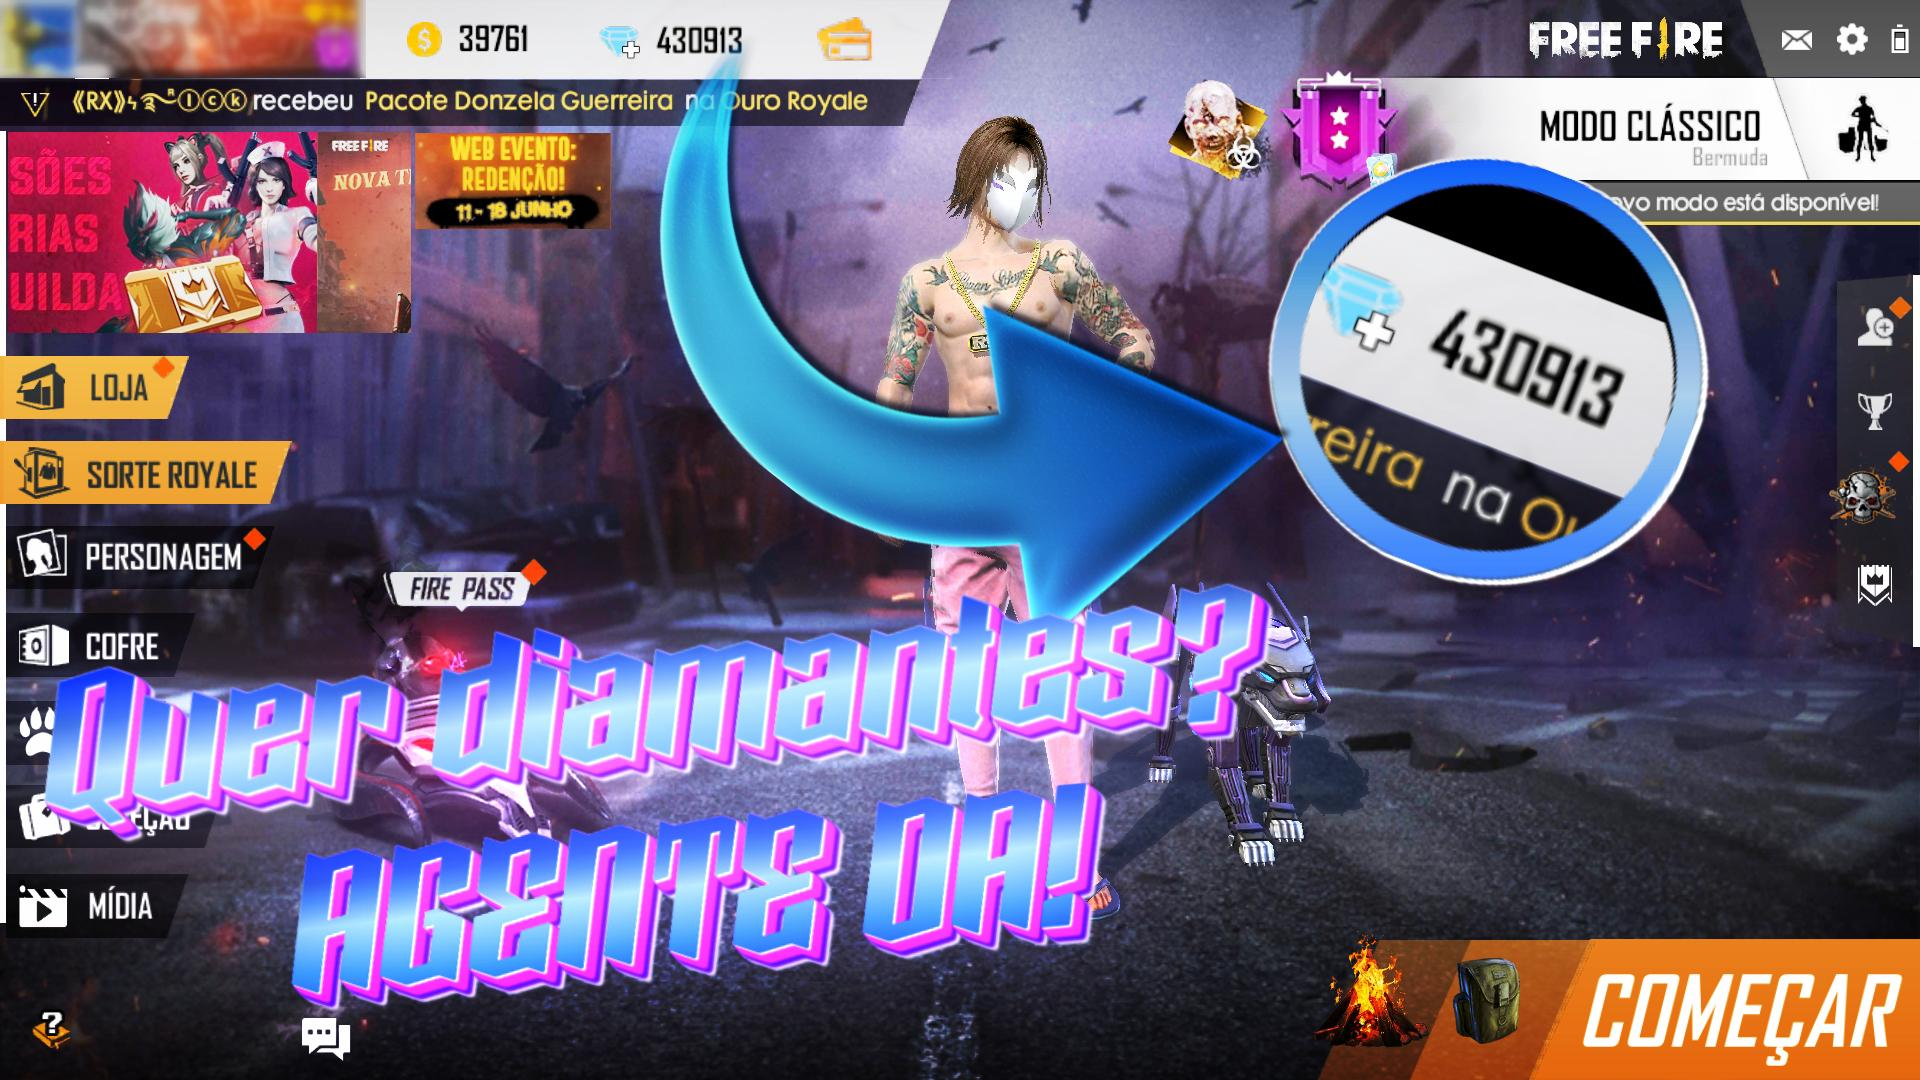 Reward FF for Android - APK Download